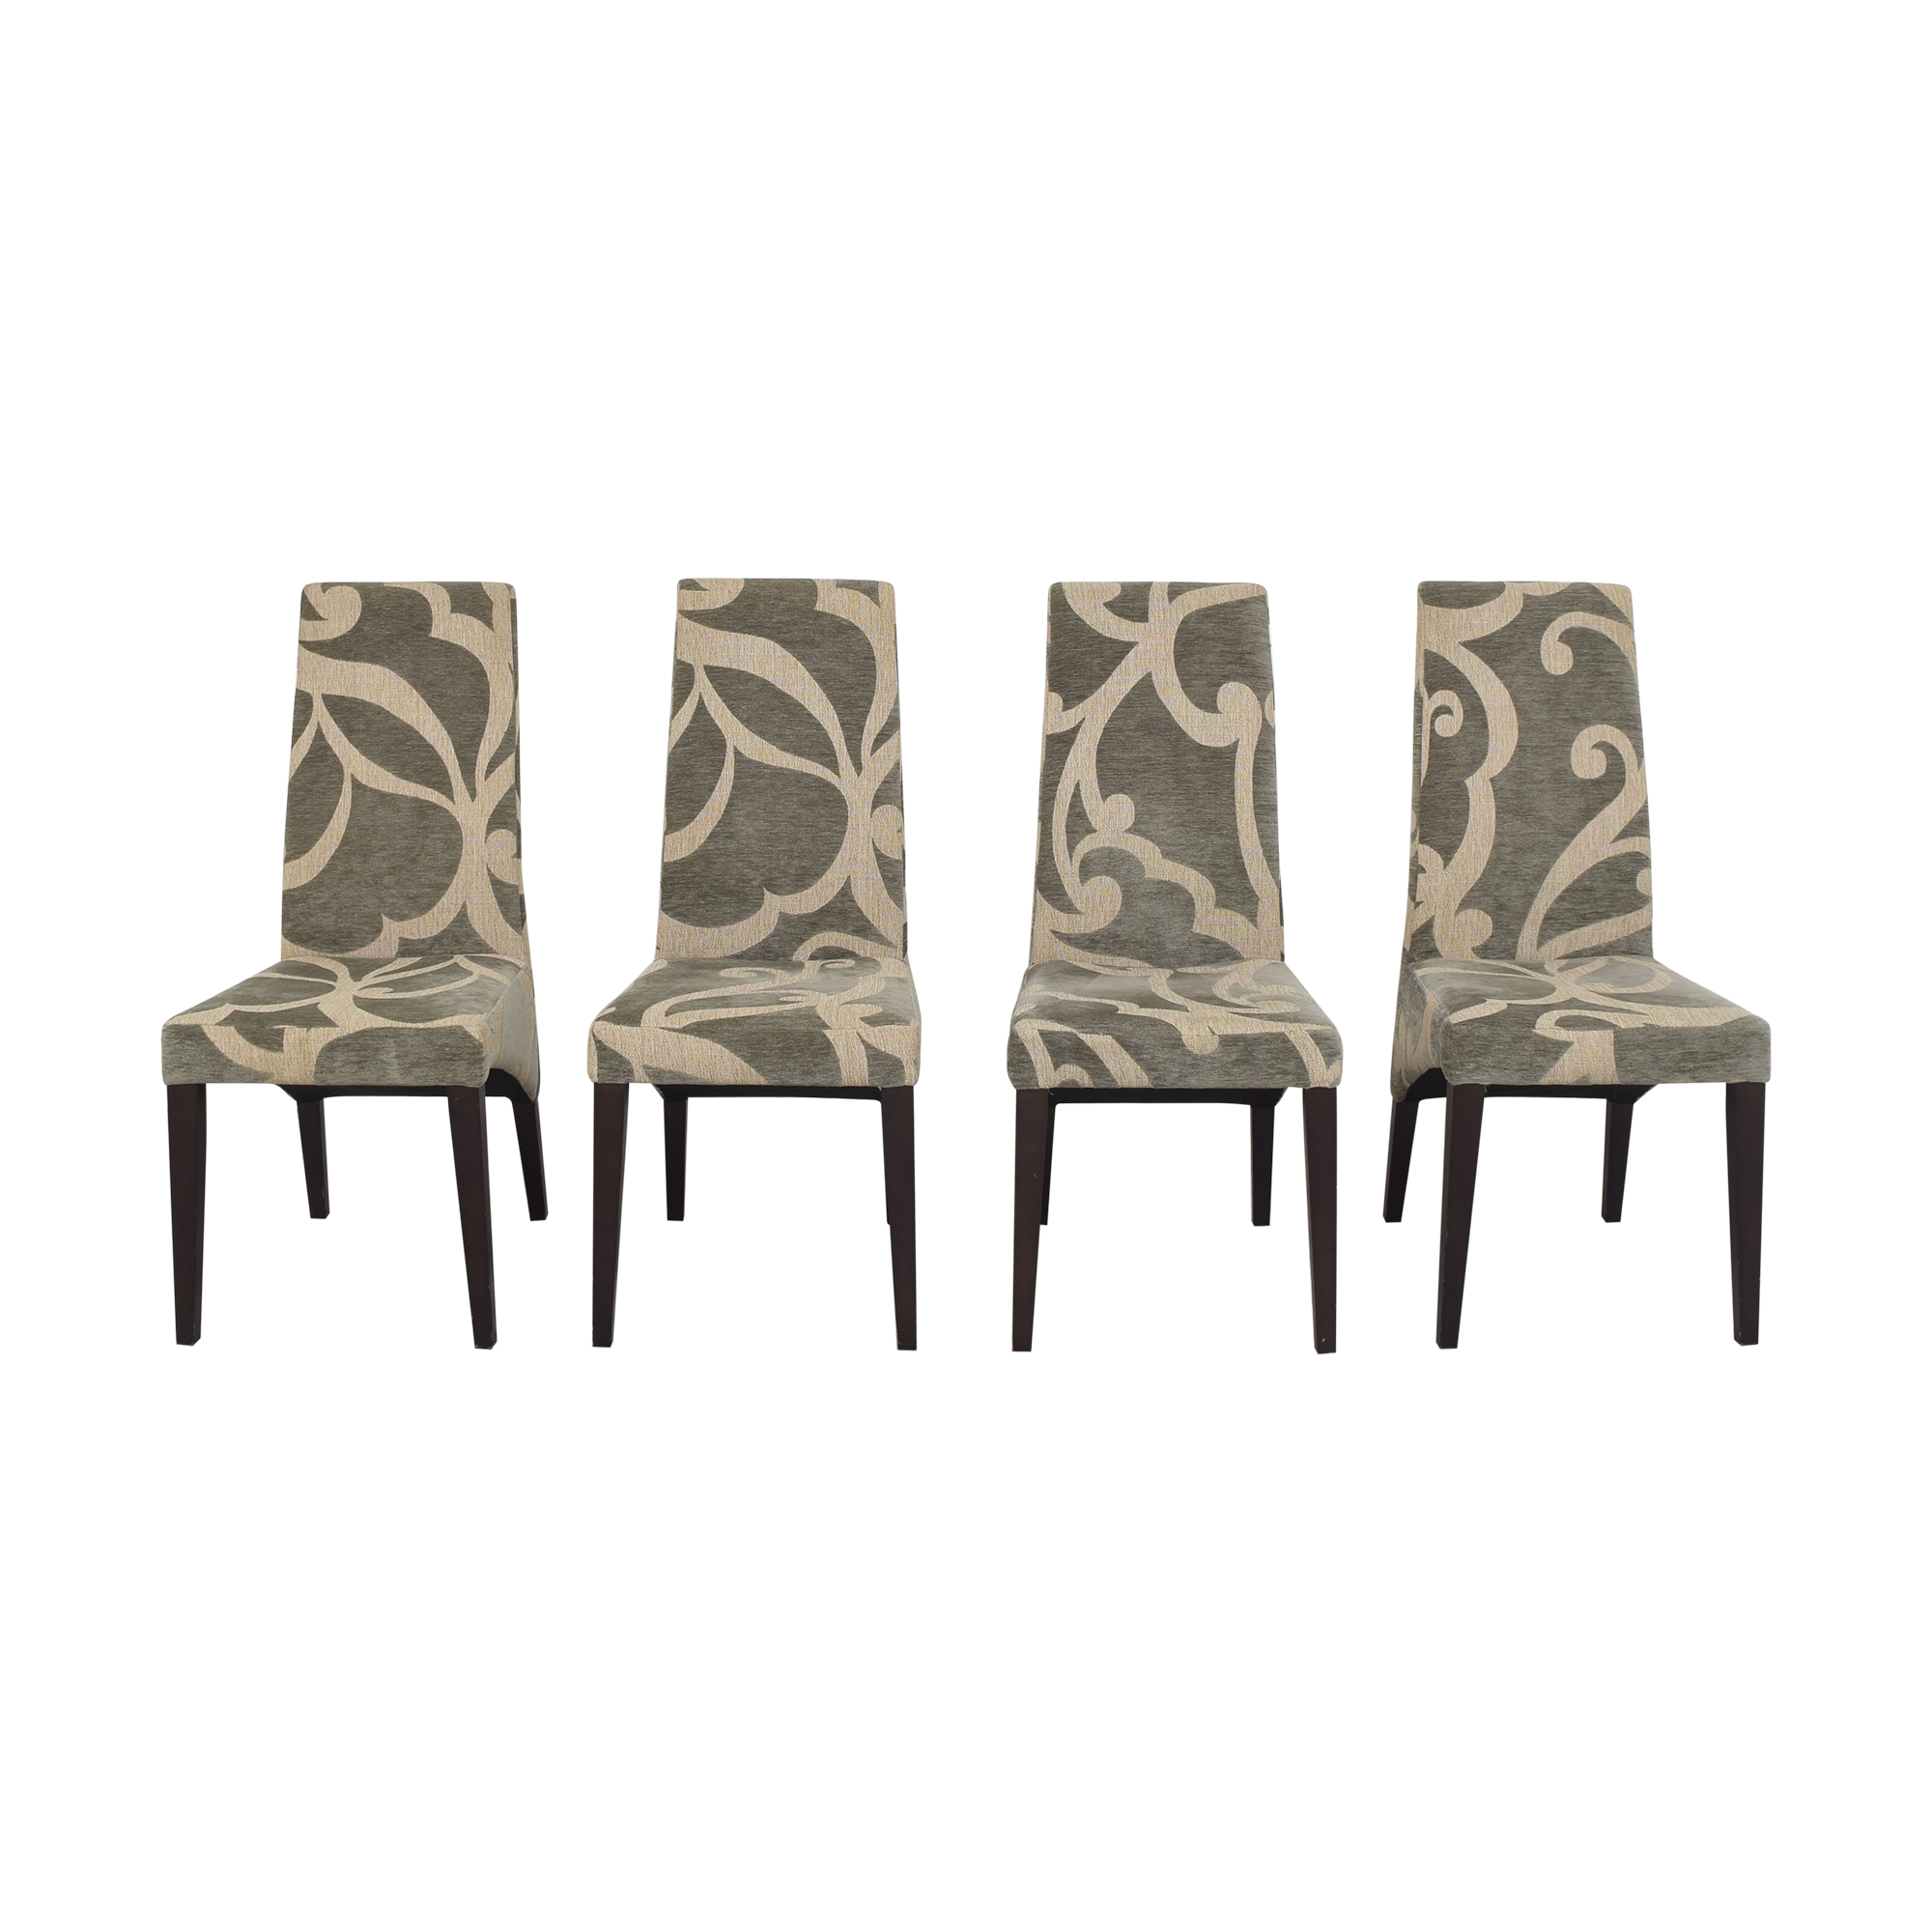 buy Fama Fama Marcelo Ibanez Dining Chairs online